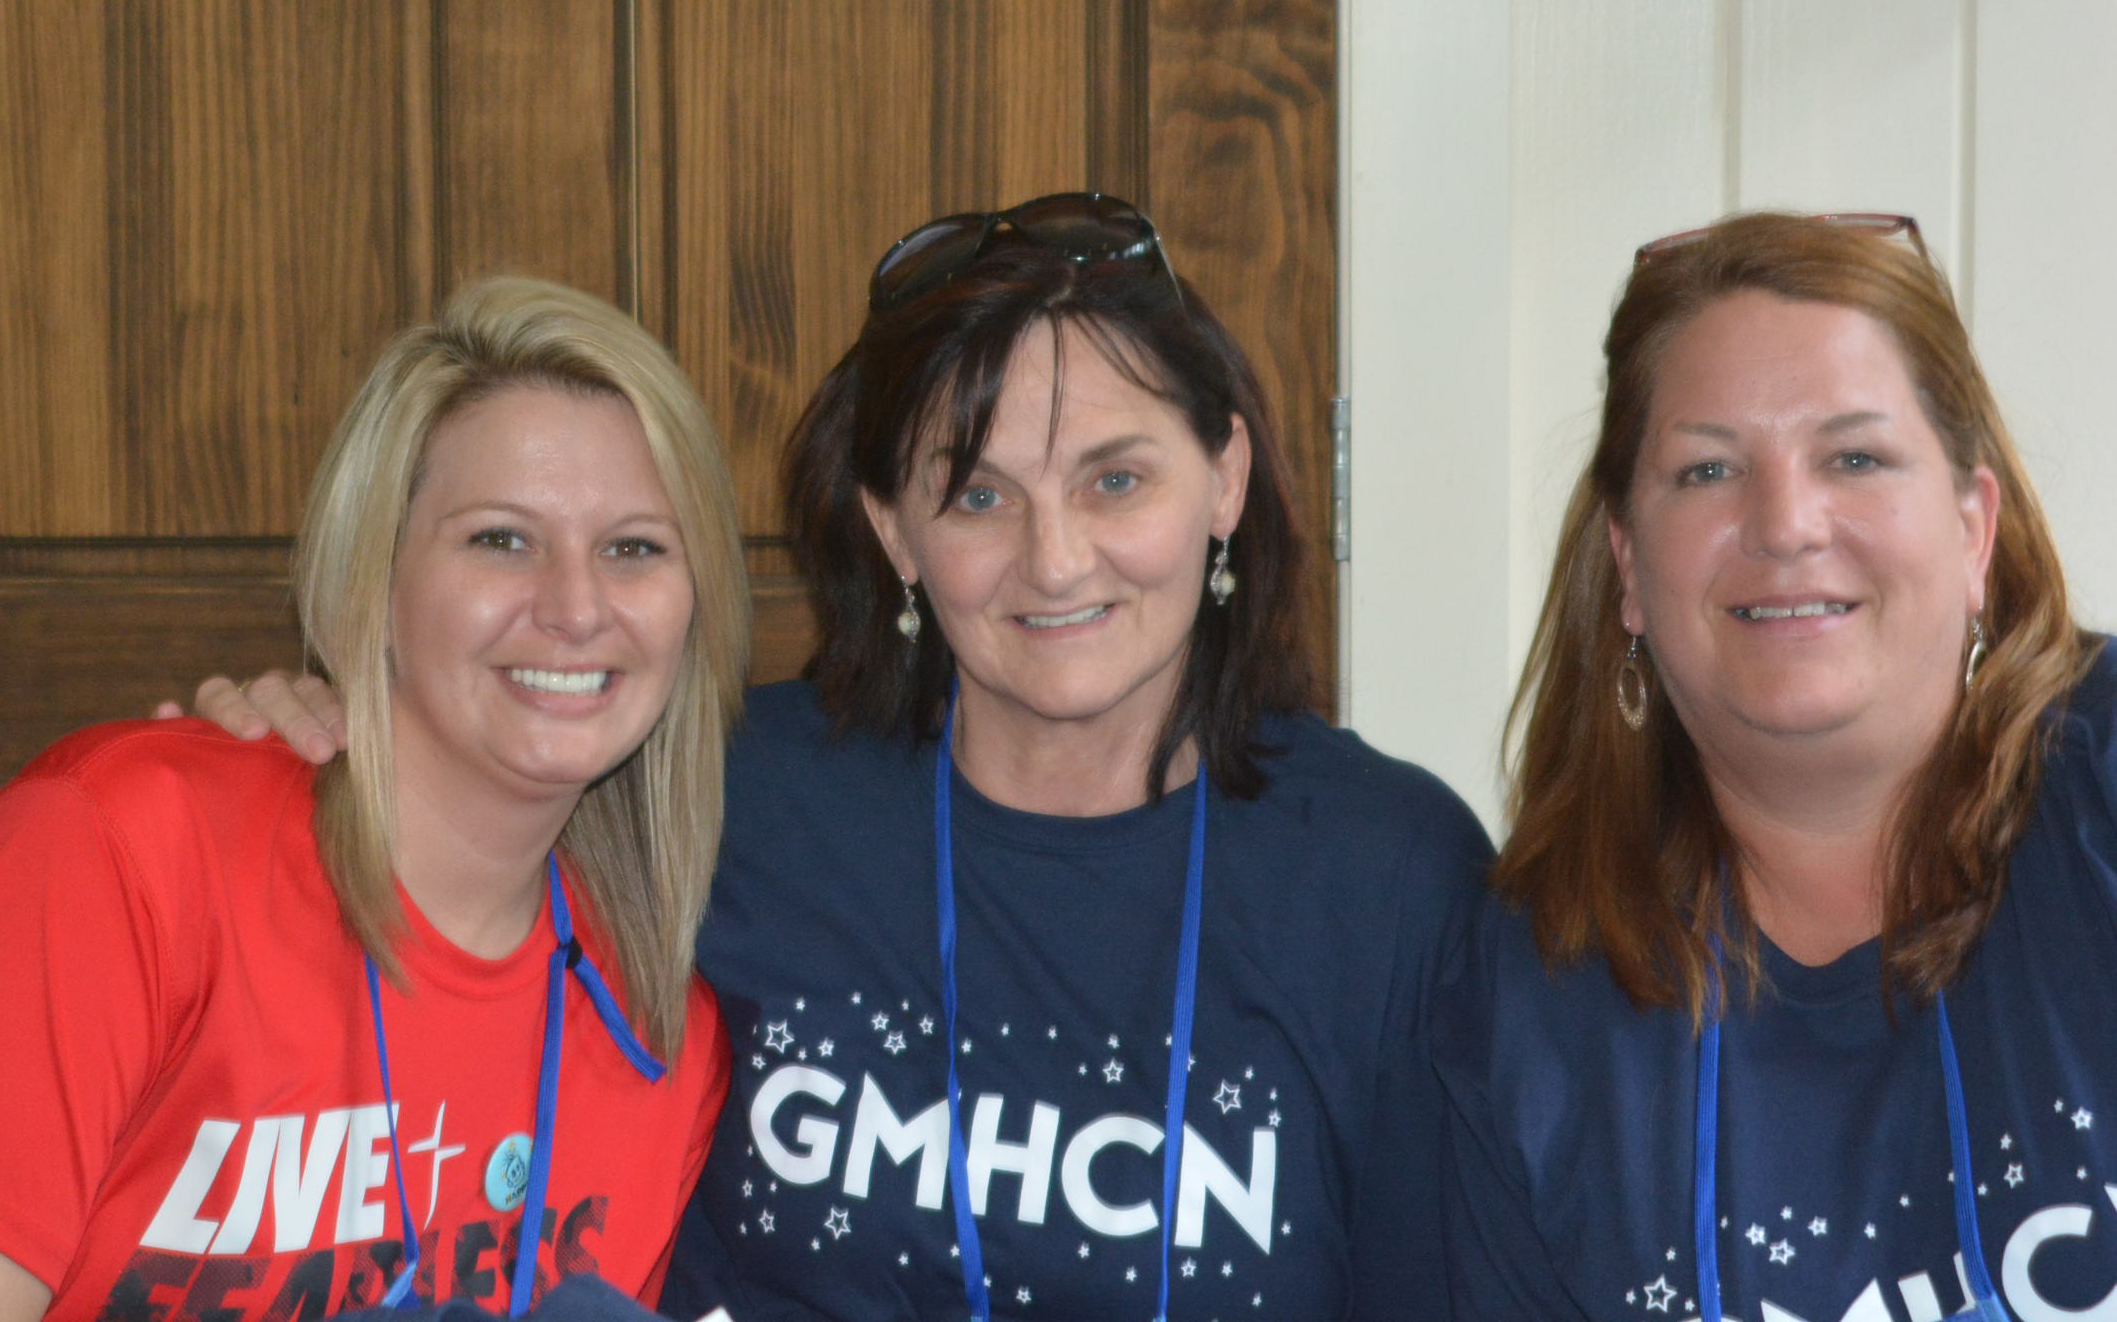 GMHCN 2018 conference (70)